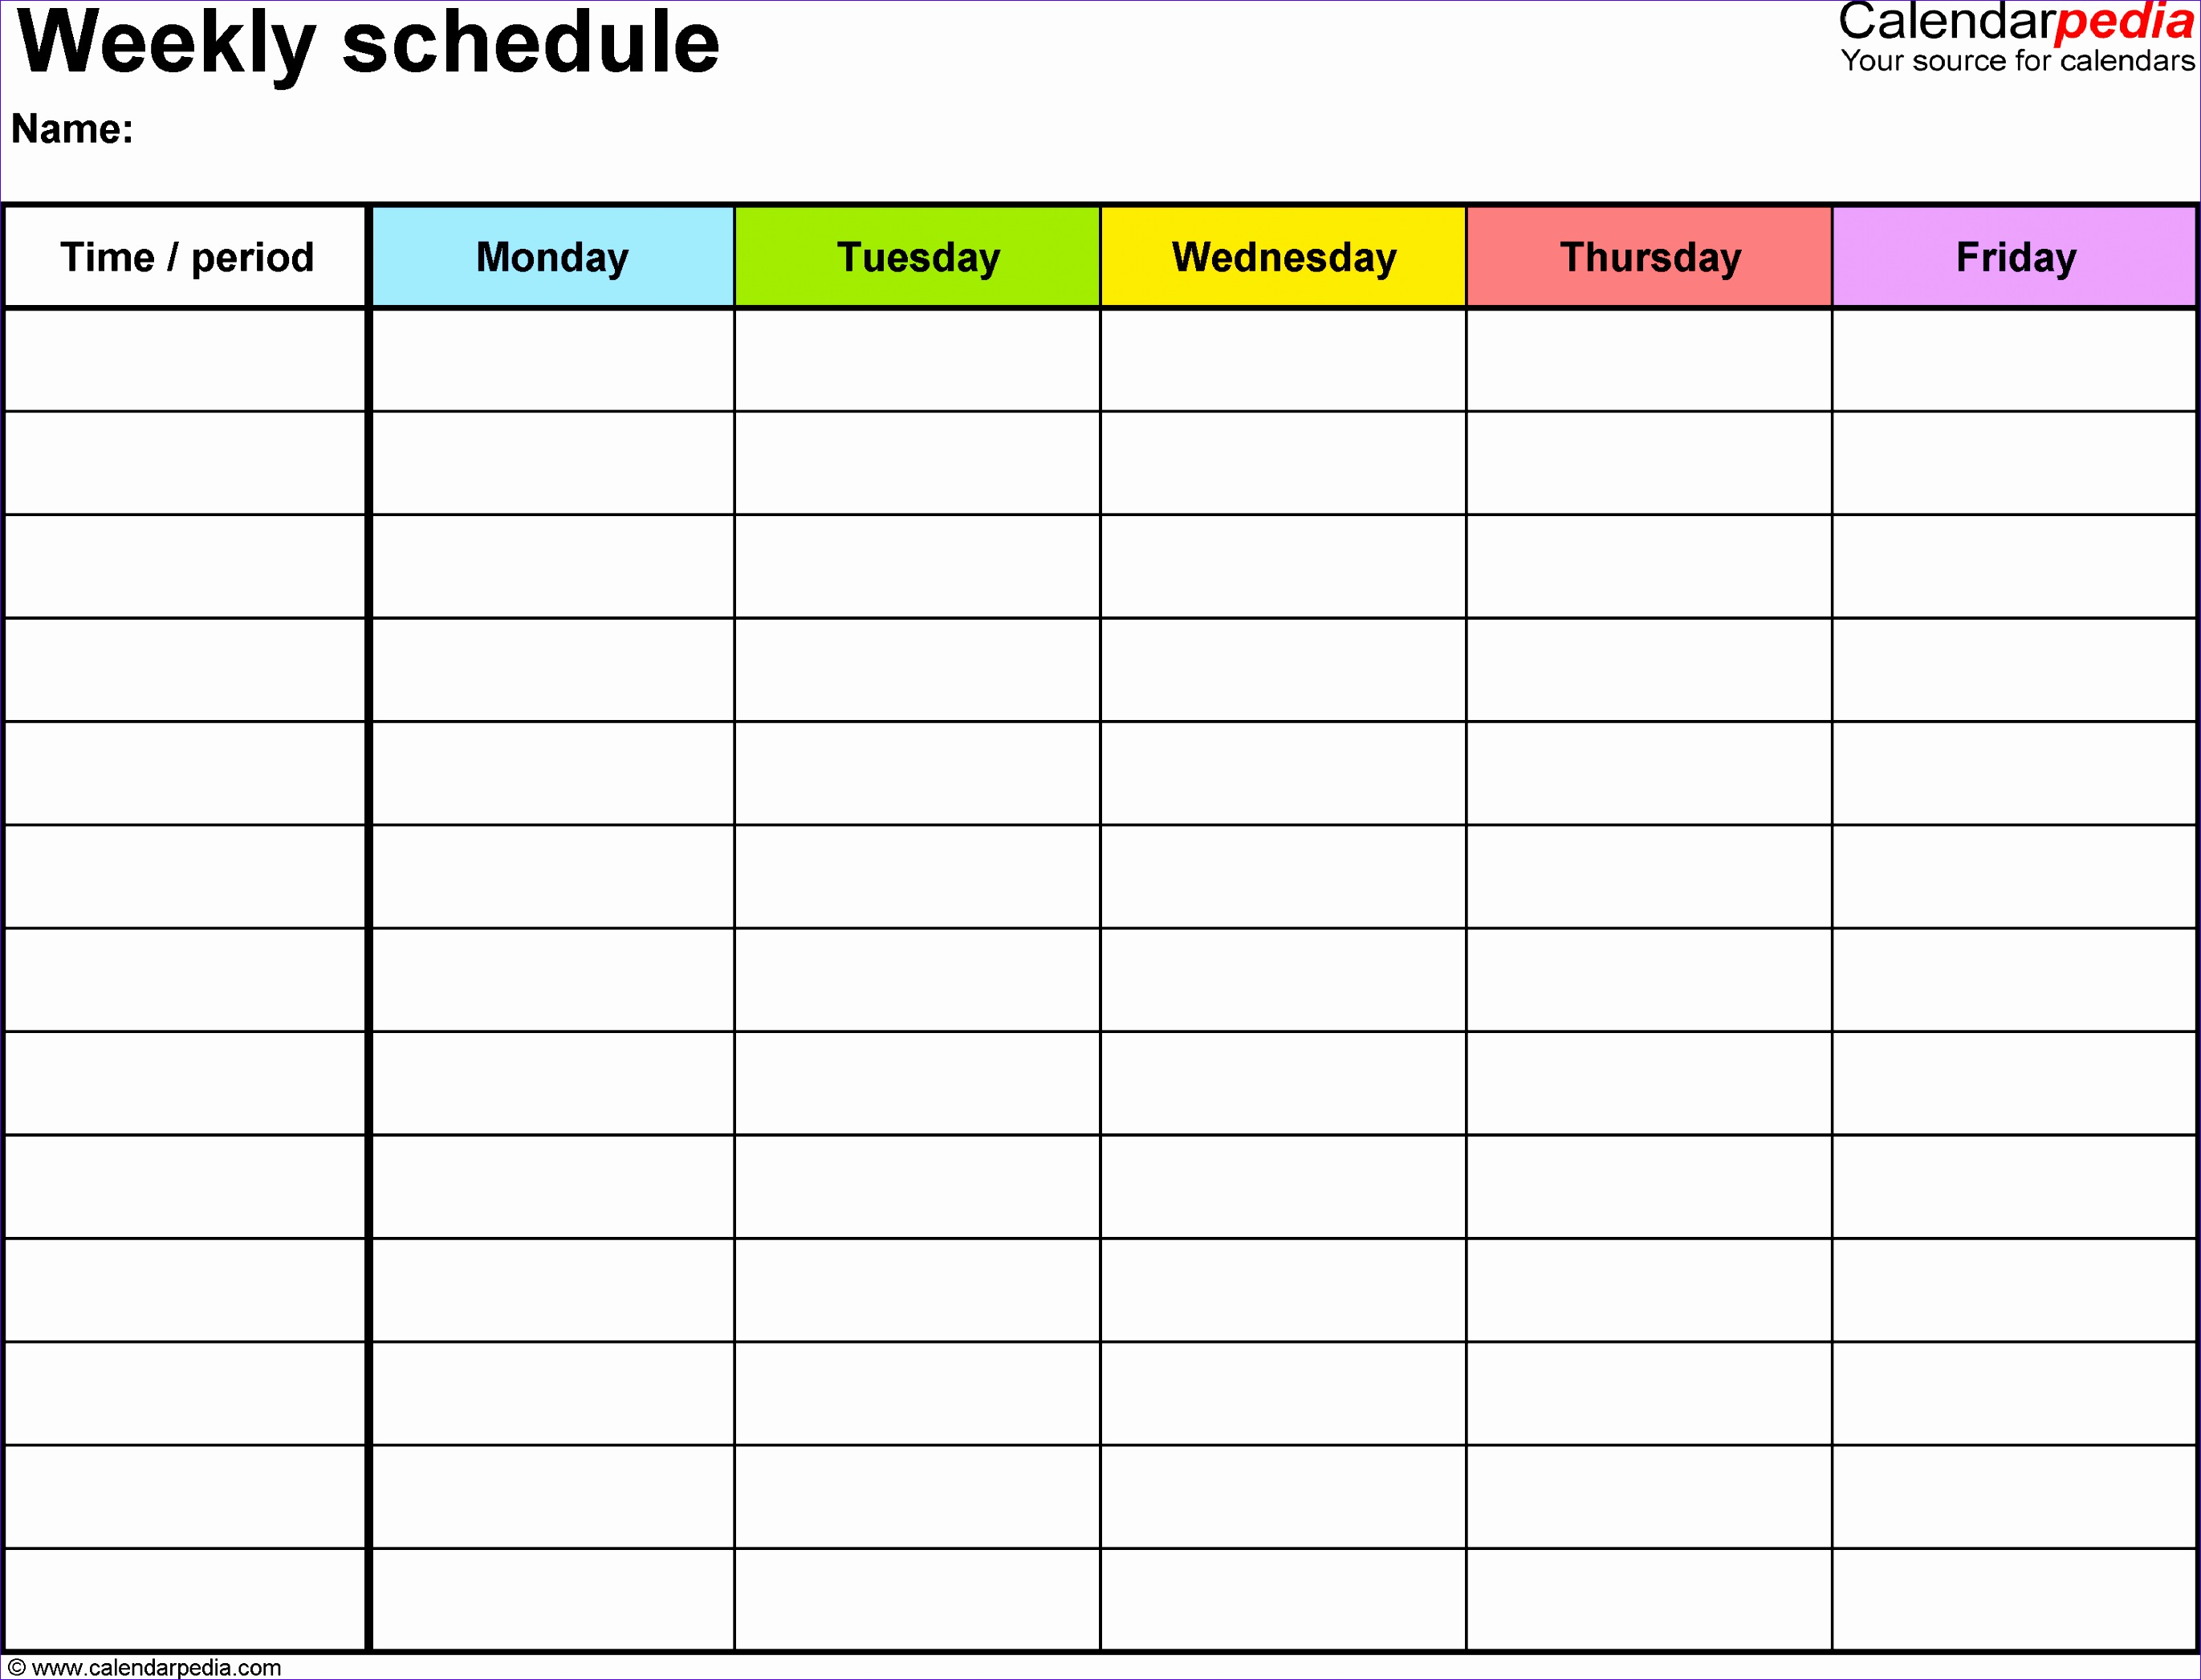 5 why template excel wcfhp new 5 why template excel exceltemplates 5 why template excel o3rsd awesome free weekly schedule templates for excel 18 templates maxwellsz